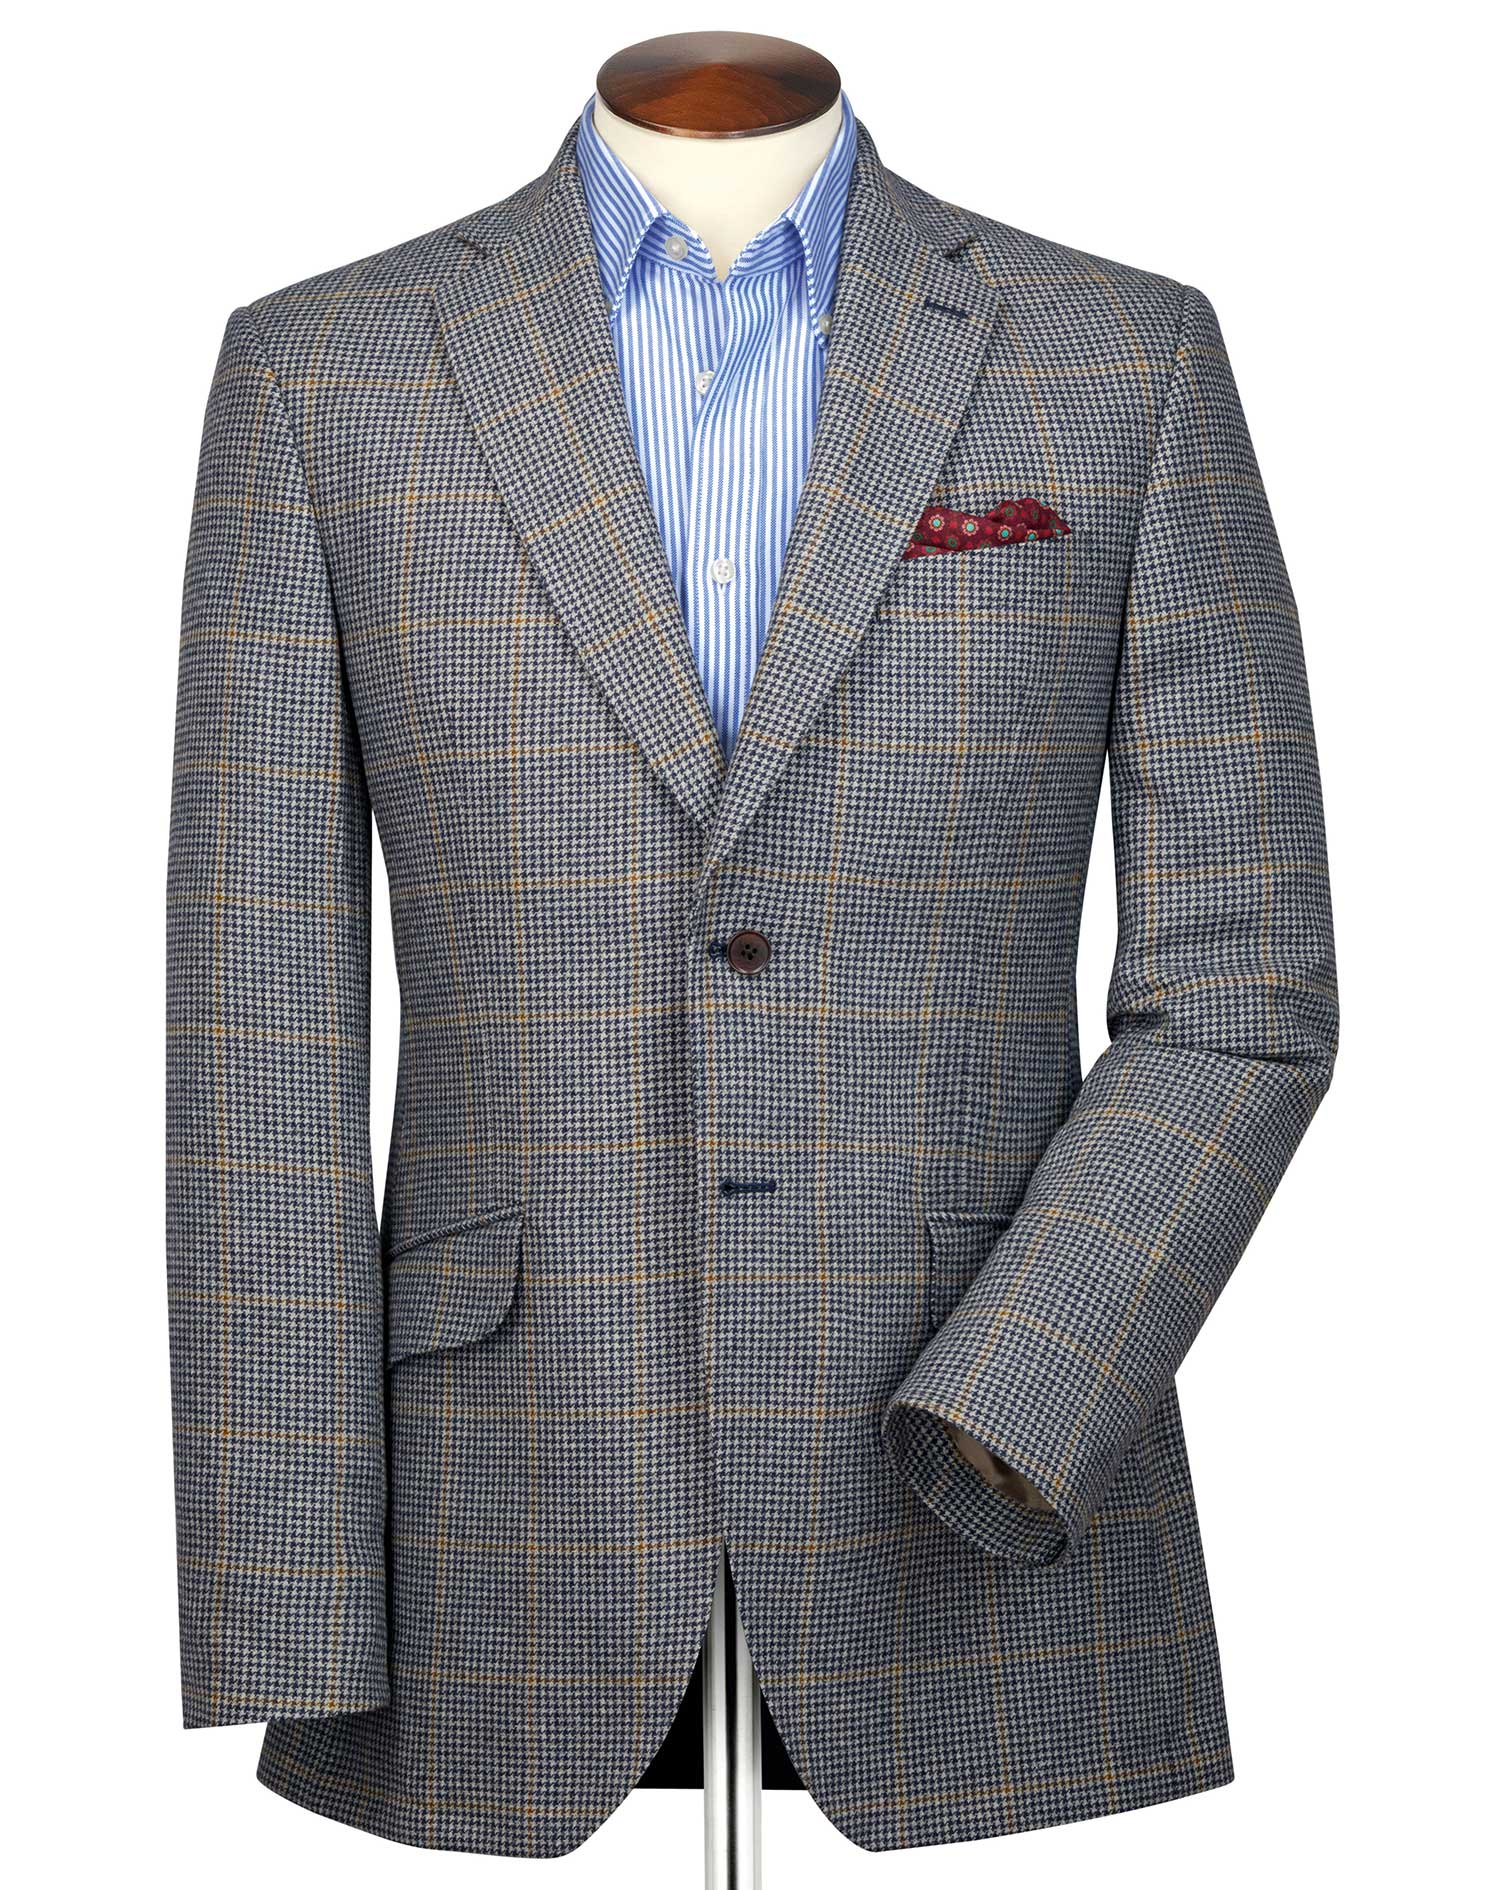 Classic Fit Blue and Beige Checkered British Tweed Jacket Size 48 Regular by Charles Tyrwhitt